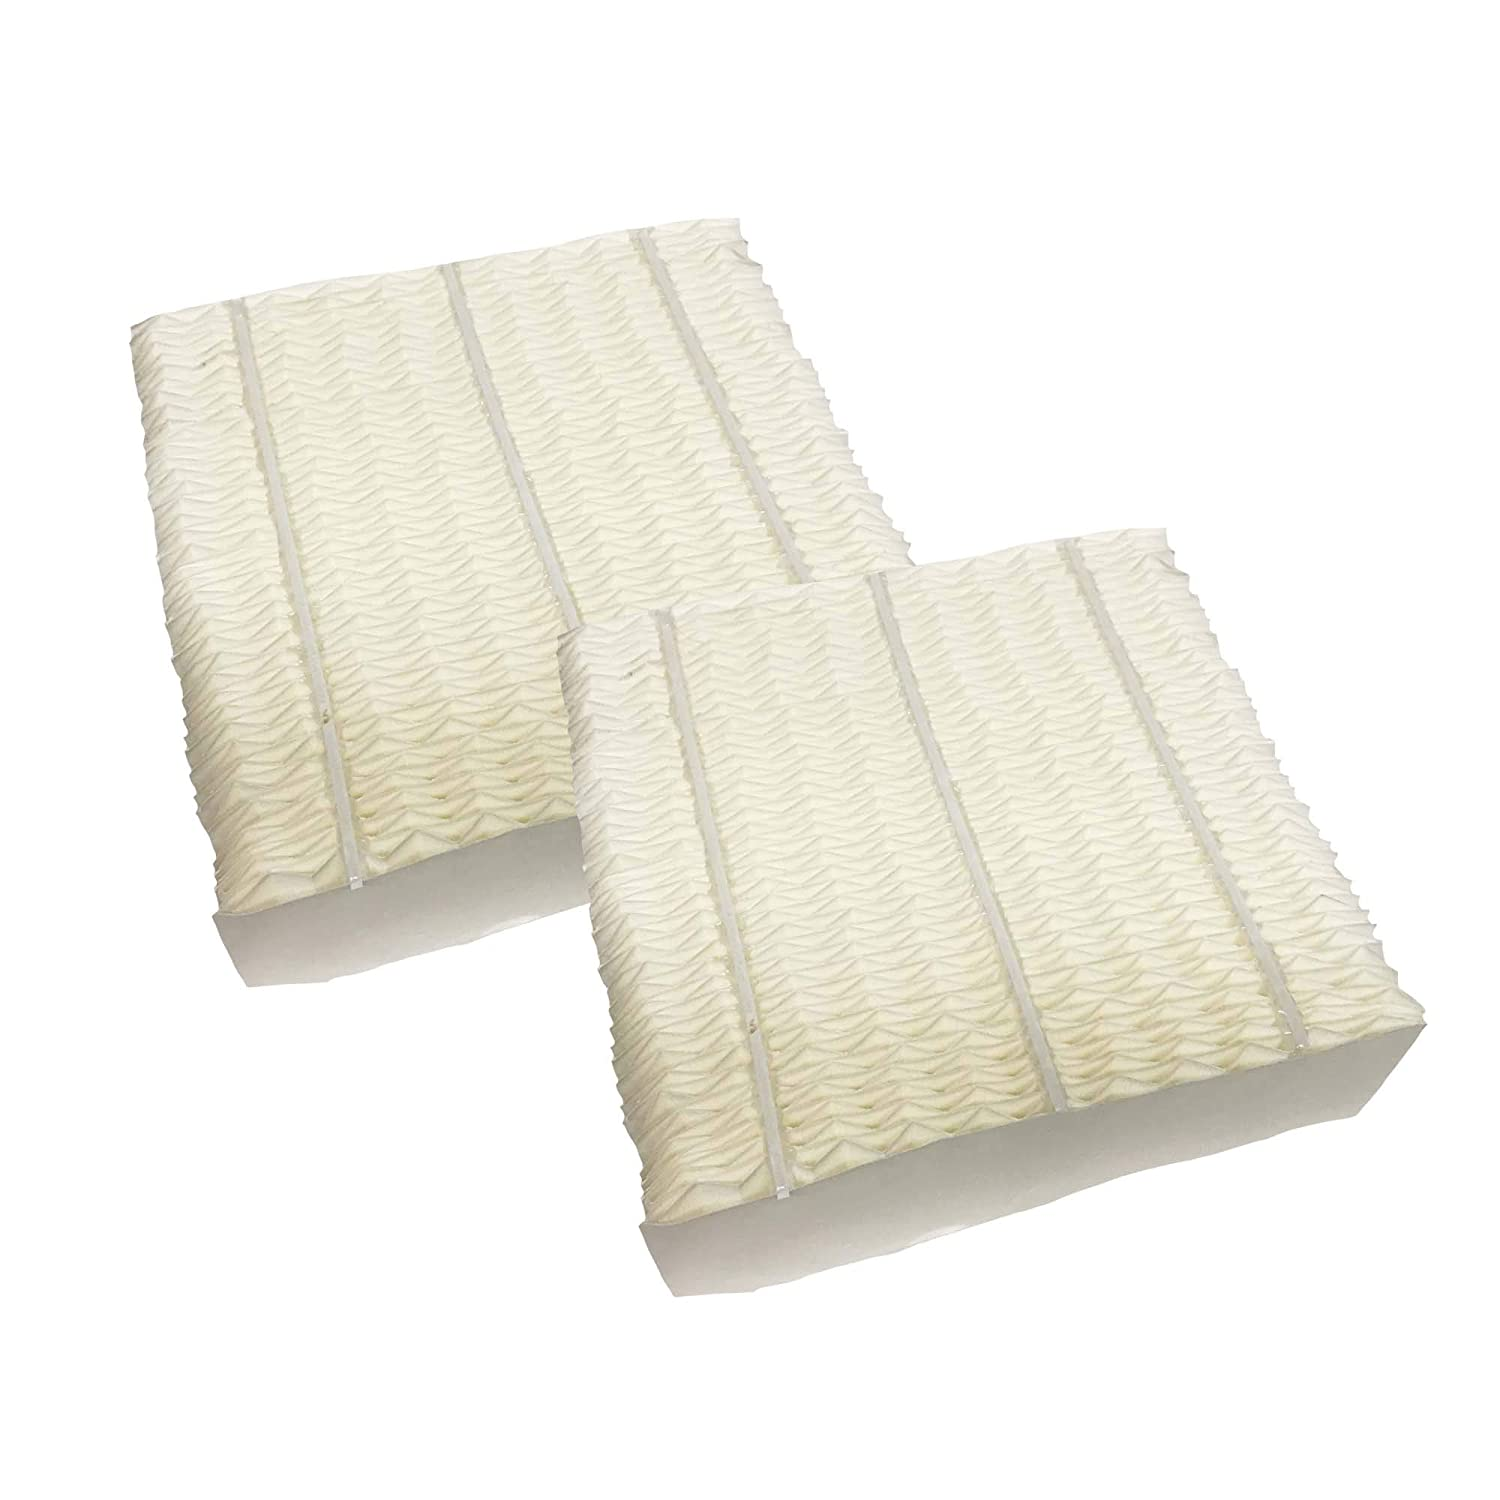 """Think Crucial 2 Replacements Aircare 1043 Paper Wick Humidifier Filter Fits Spacesaver 800, 8000 Series Console, 10.8"""" x 4.2"""" x 12.5"""""""